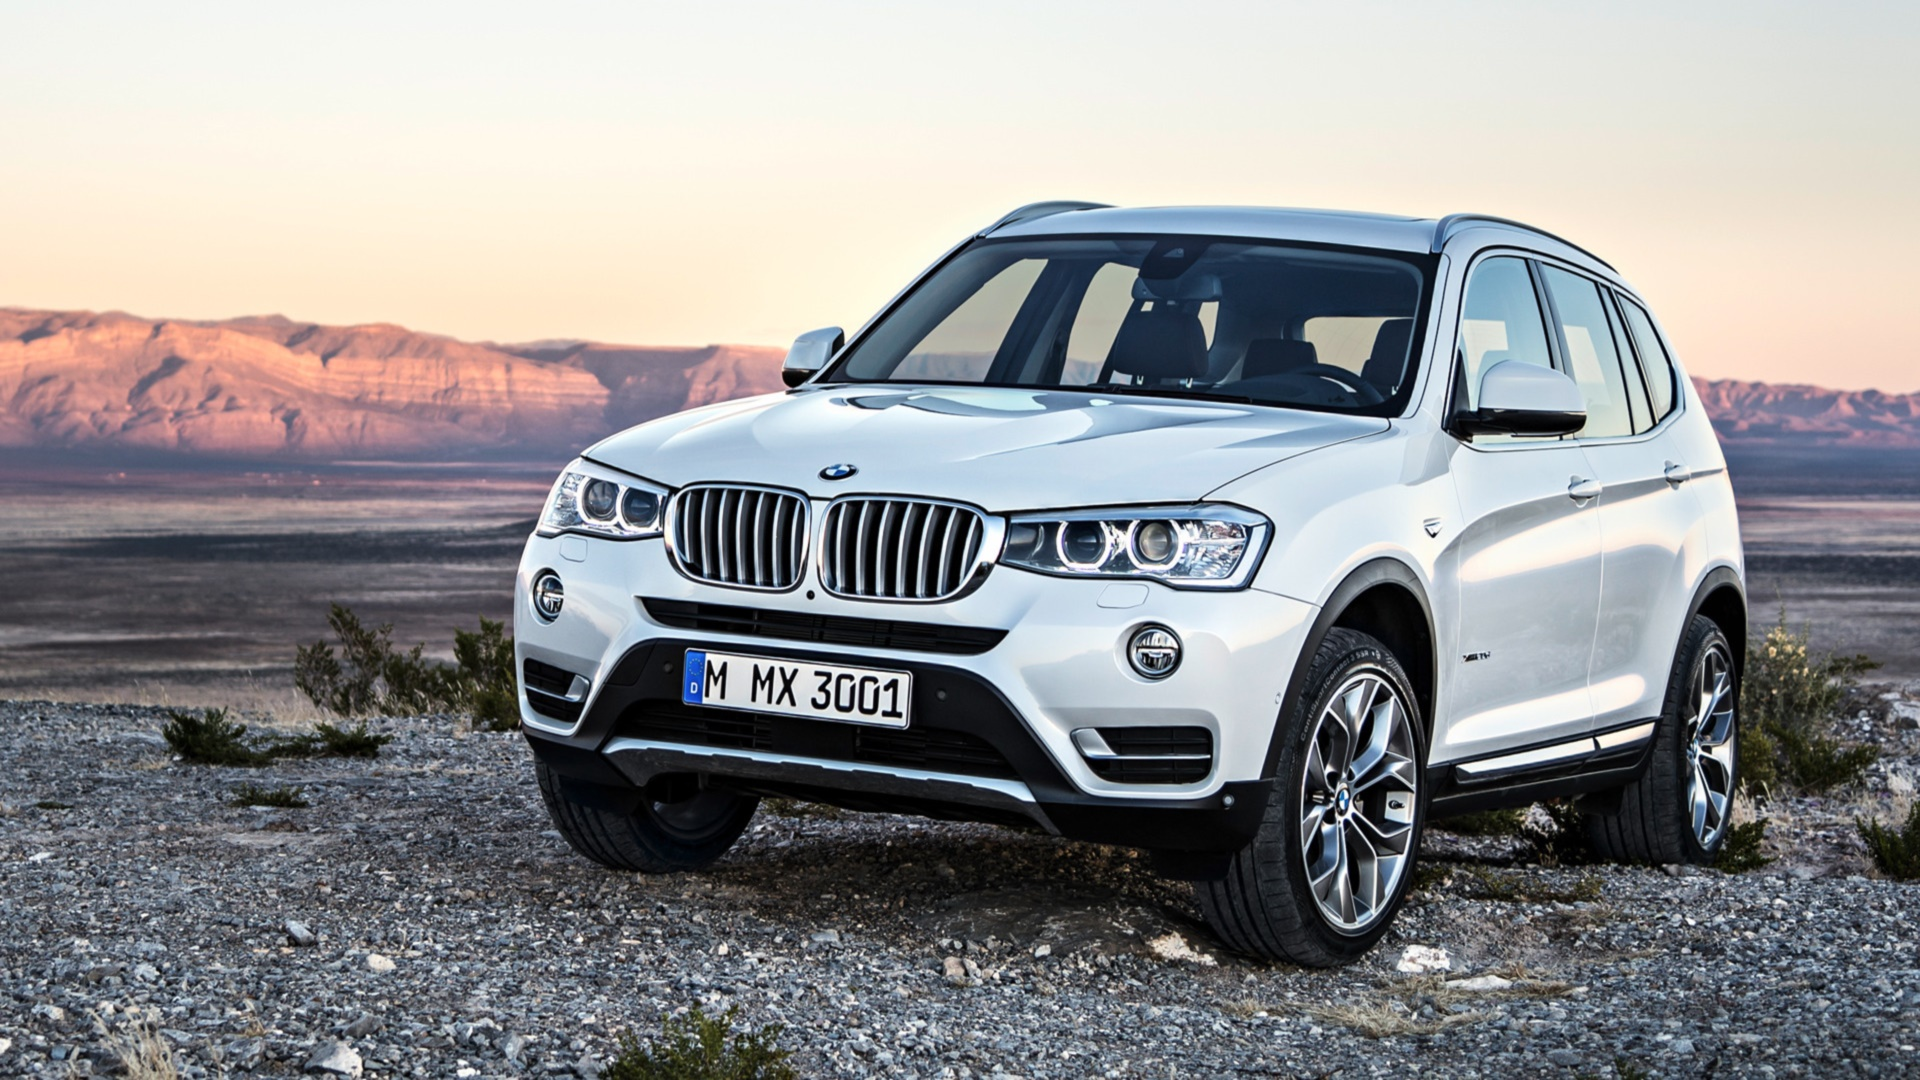 17 2015 BMW X3 LCI HD Wallpapers  Backgrounds  Wallpaper Abyss